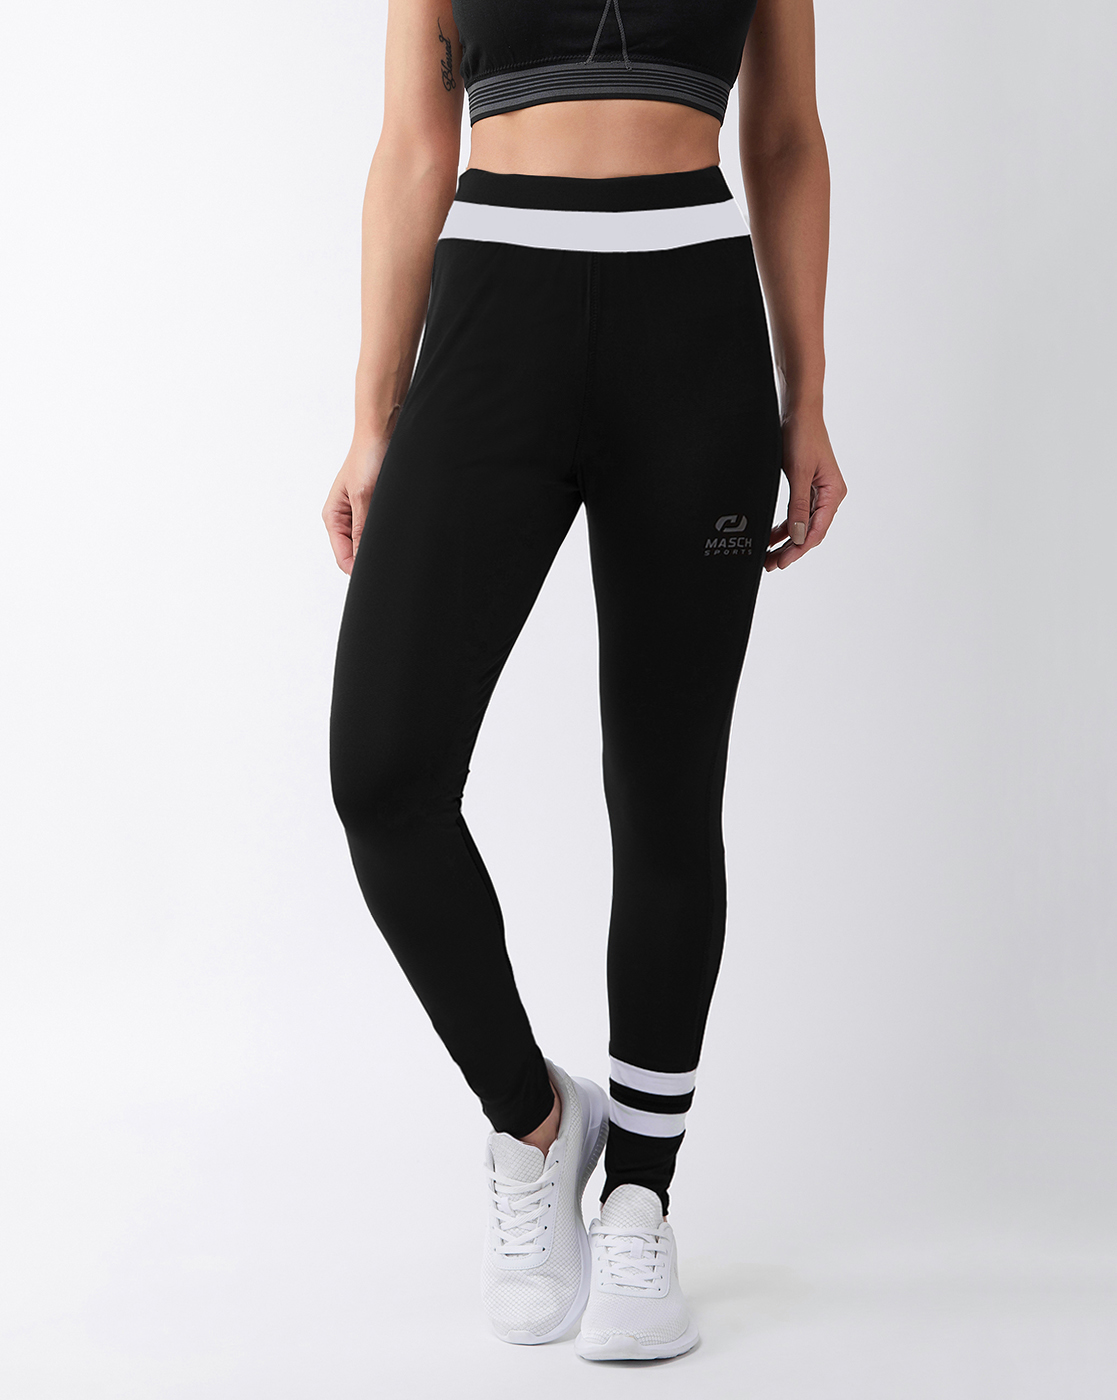 Masch Sports   Masch Sports Women's Black Solid Sports Tights with White Waistband and Ankle Stripe